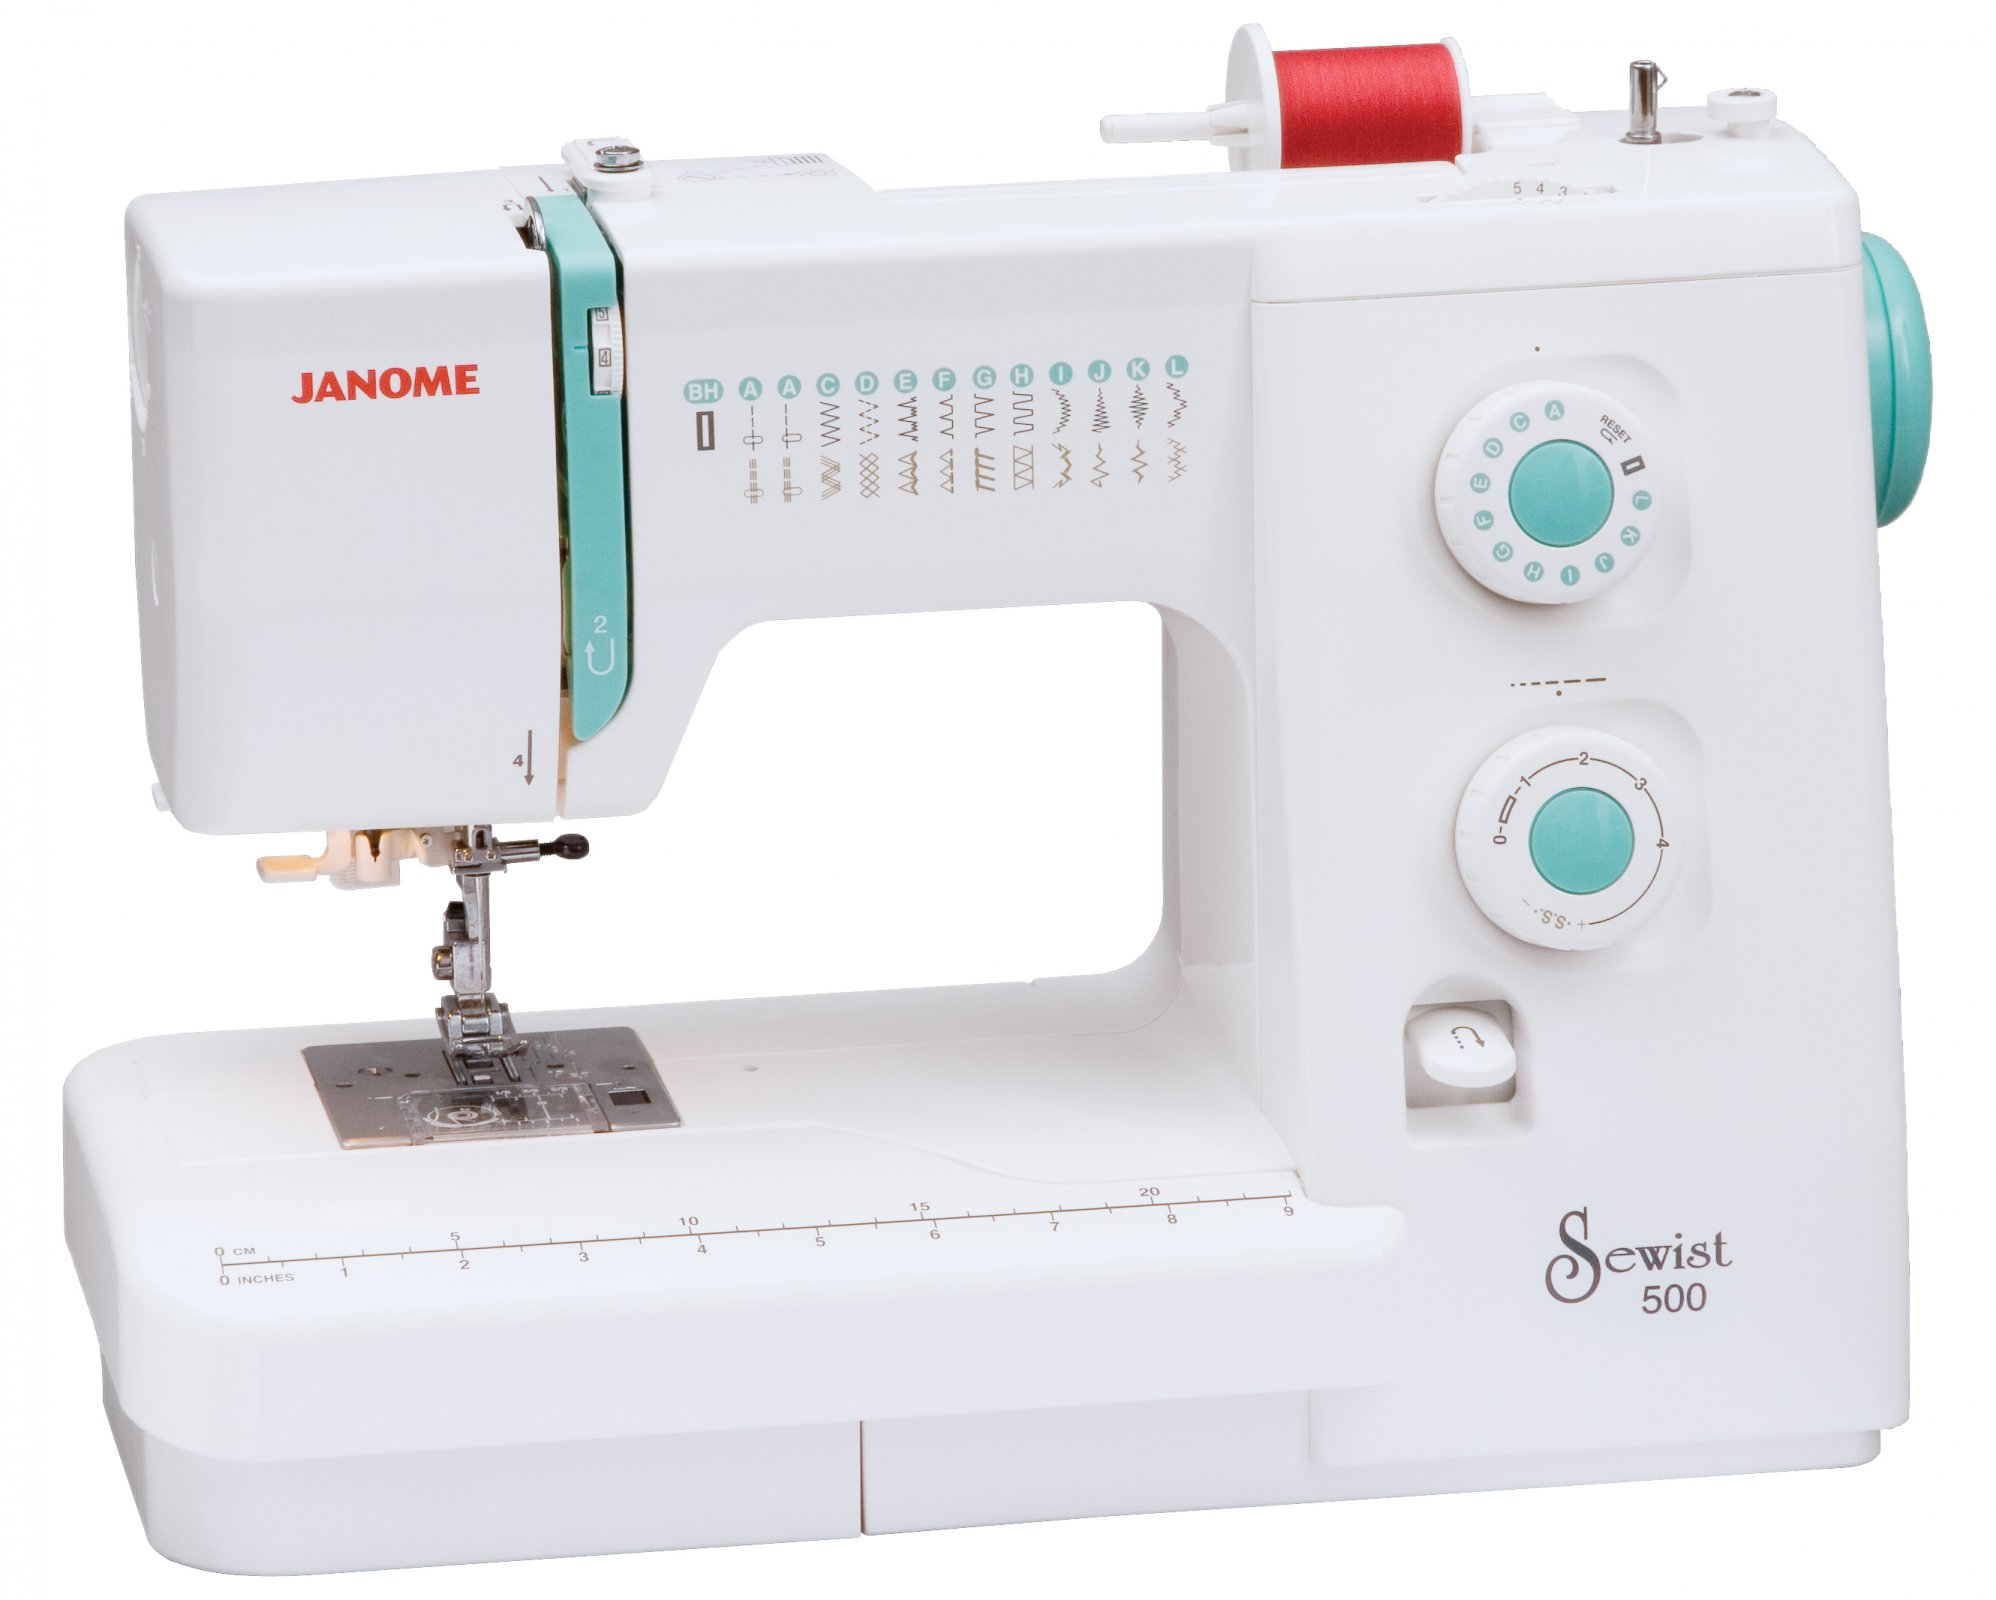 Sale! Janome Sewist 500 Sewing Machine